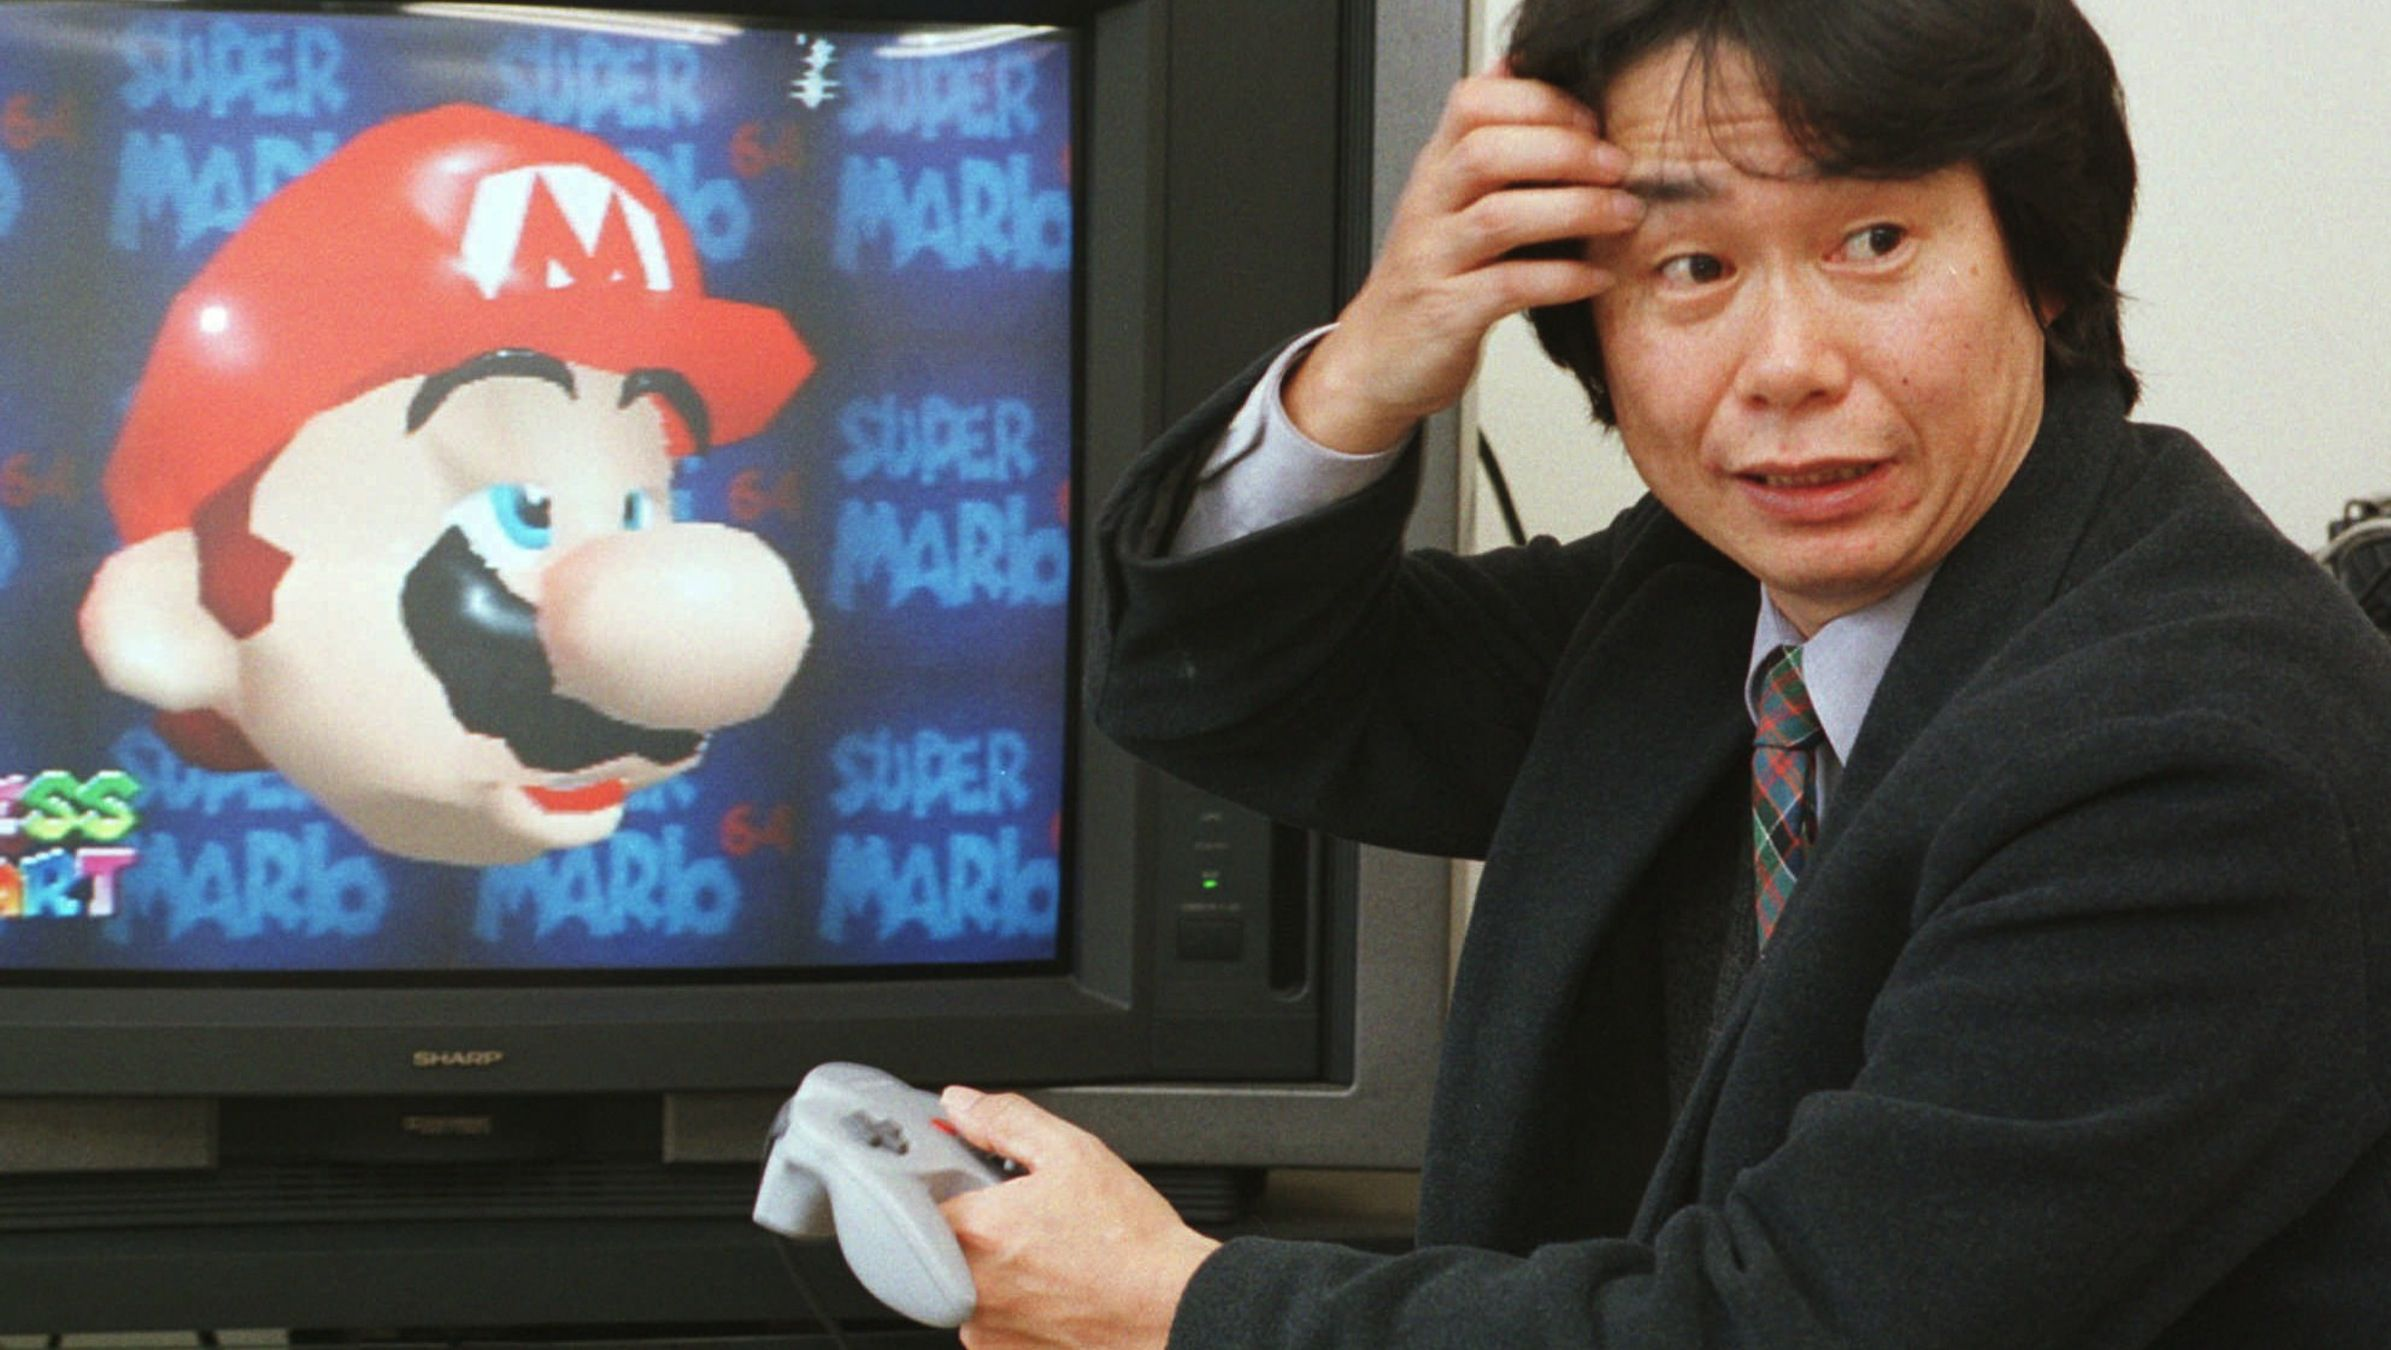 """ADVANCE FOR JAPAN-PROFILE-NINTENDO INVENTOR STORY--Shigeru Miyamoto, creator of Super Mario video game series, scratches eyebrow as he operates his latest blockbuster product, Super Mario 64, in his office at the Nintendo Co. headquarters in Kyoto, southwest of Japan, Feb. 6, 1997.   """"I'm so glad I work for a toy-maker,"""" Miyamoto, 44, said with a smile. """"I view the company as a patron and sponsor.""""   (AP Photo/Atsushi Tsukada)"""